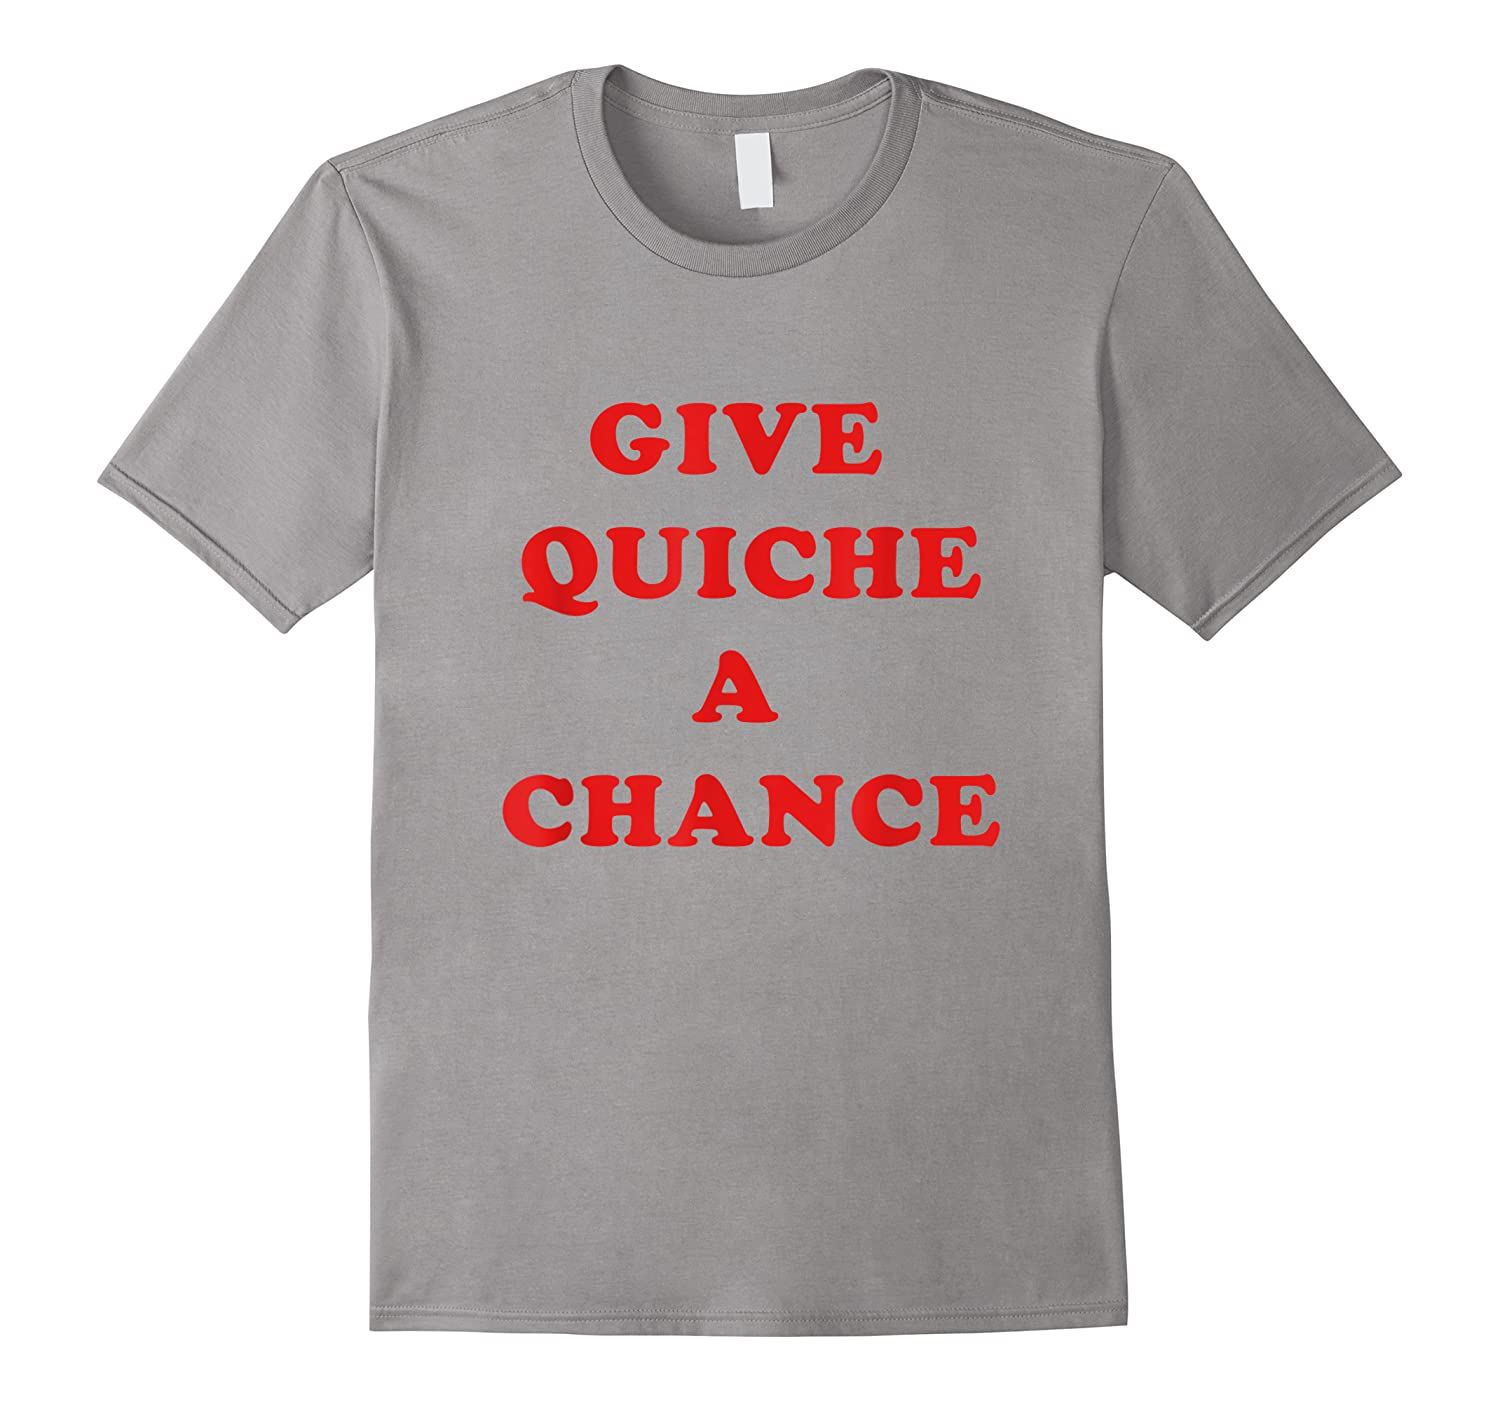 Give Quiche A Chance Funny Quiche Shirts